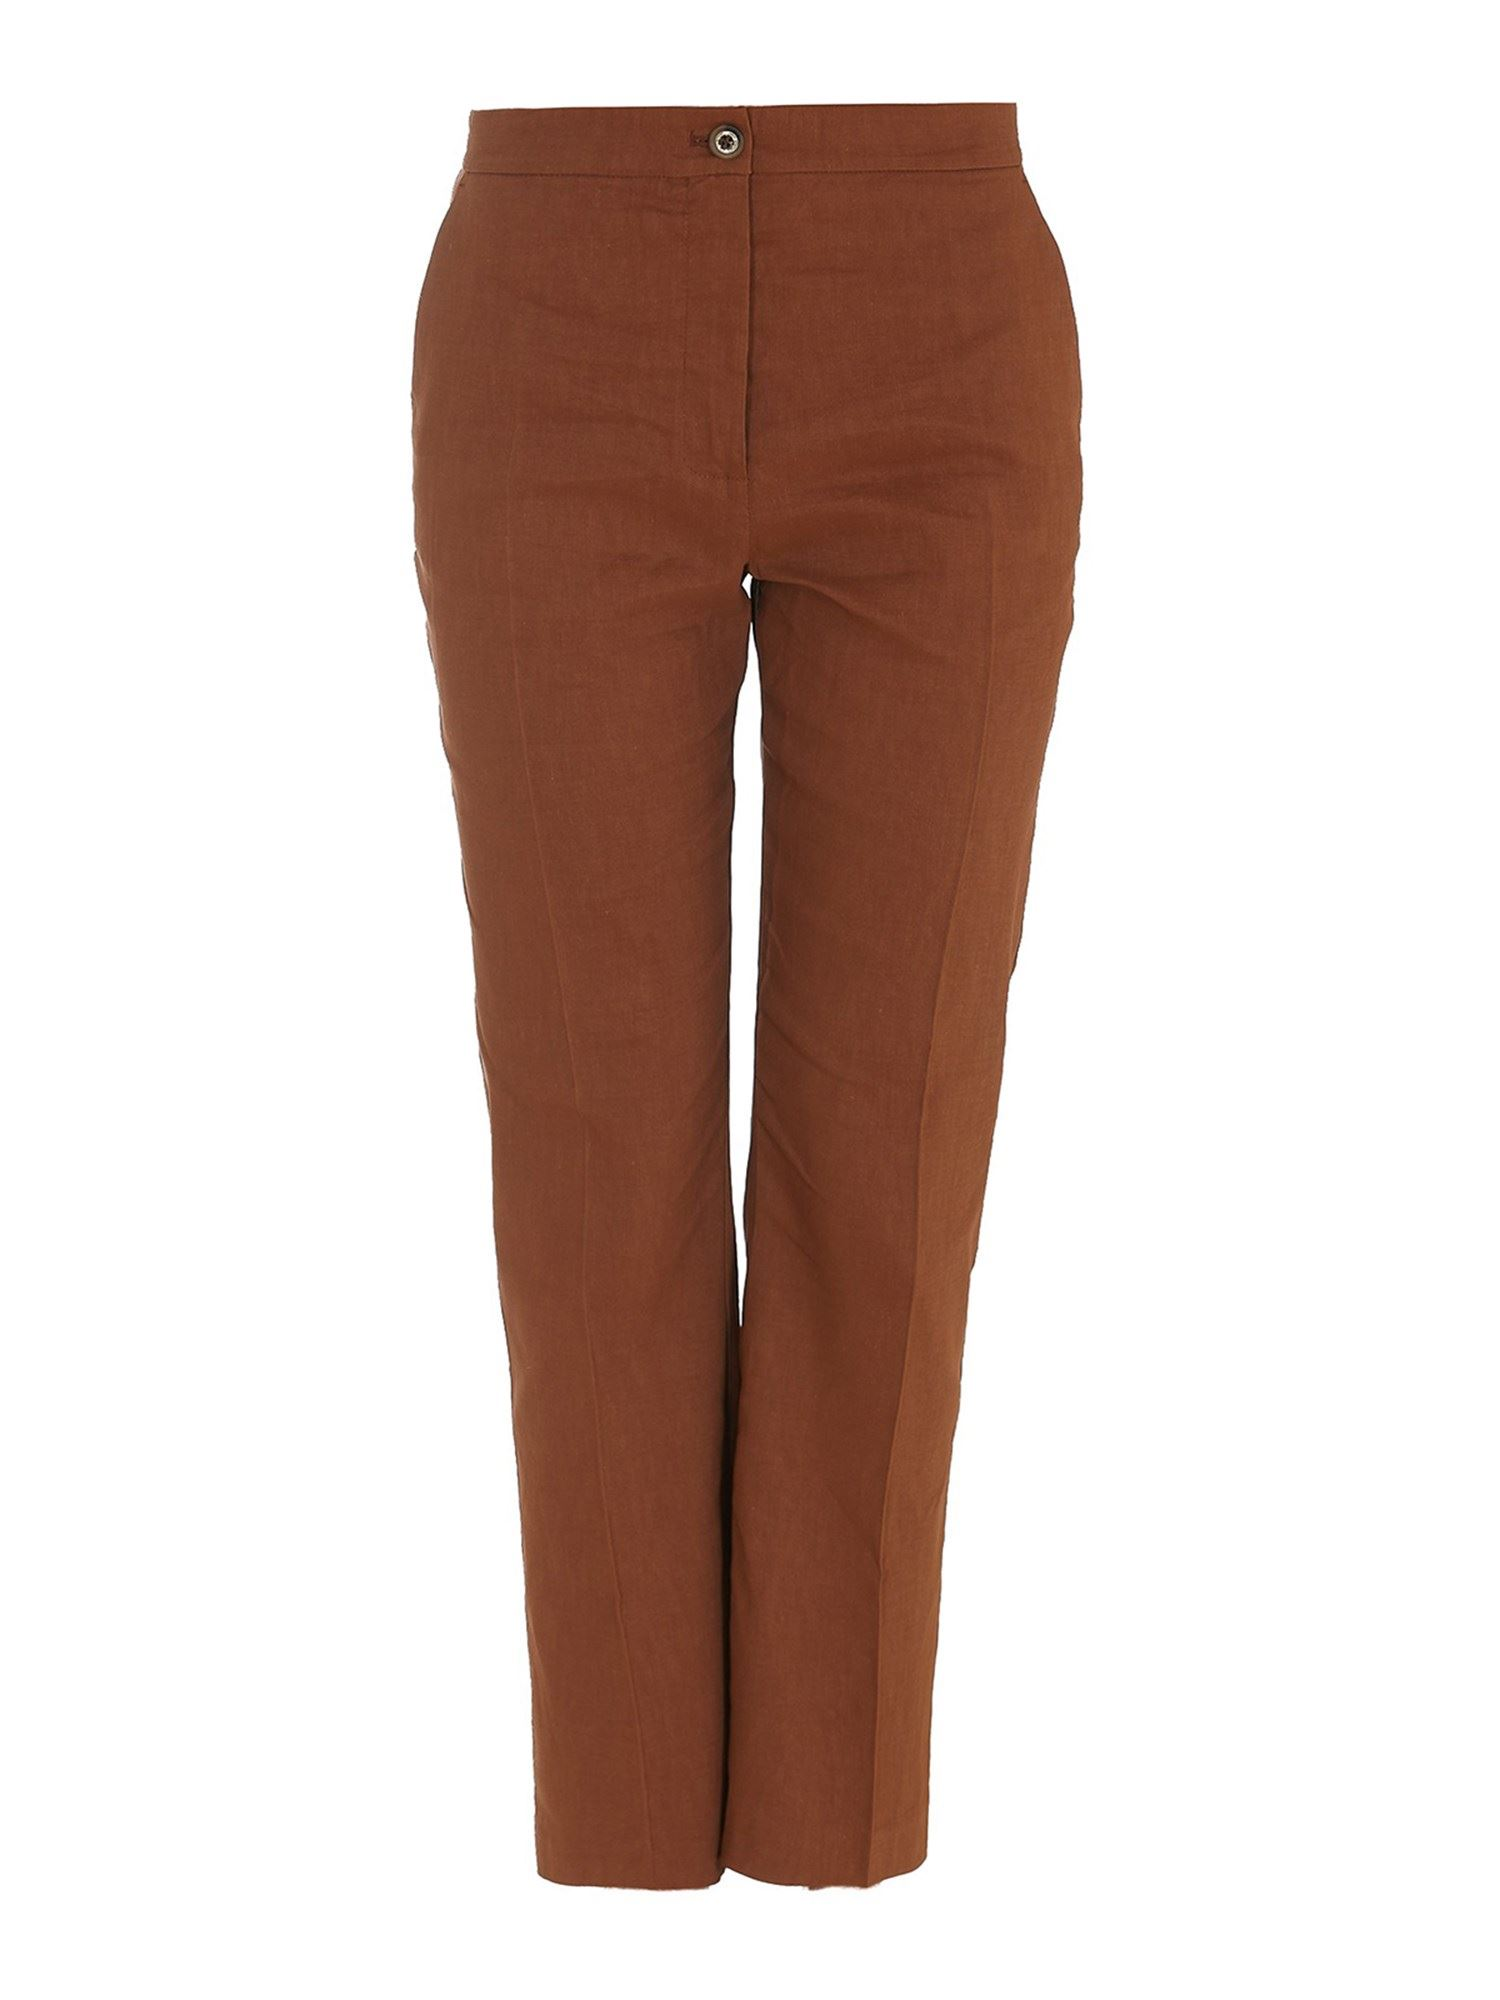 Pinko Linens PINKO SOLO LINEN BLEND TROUSERS IN BROWN